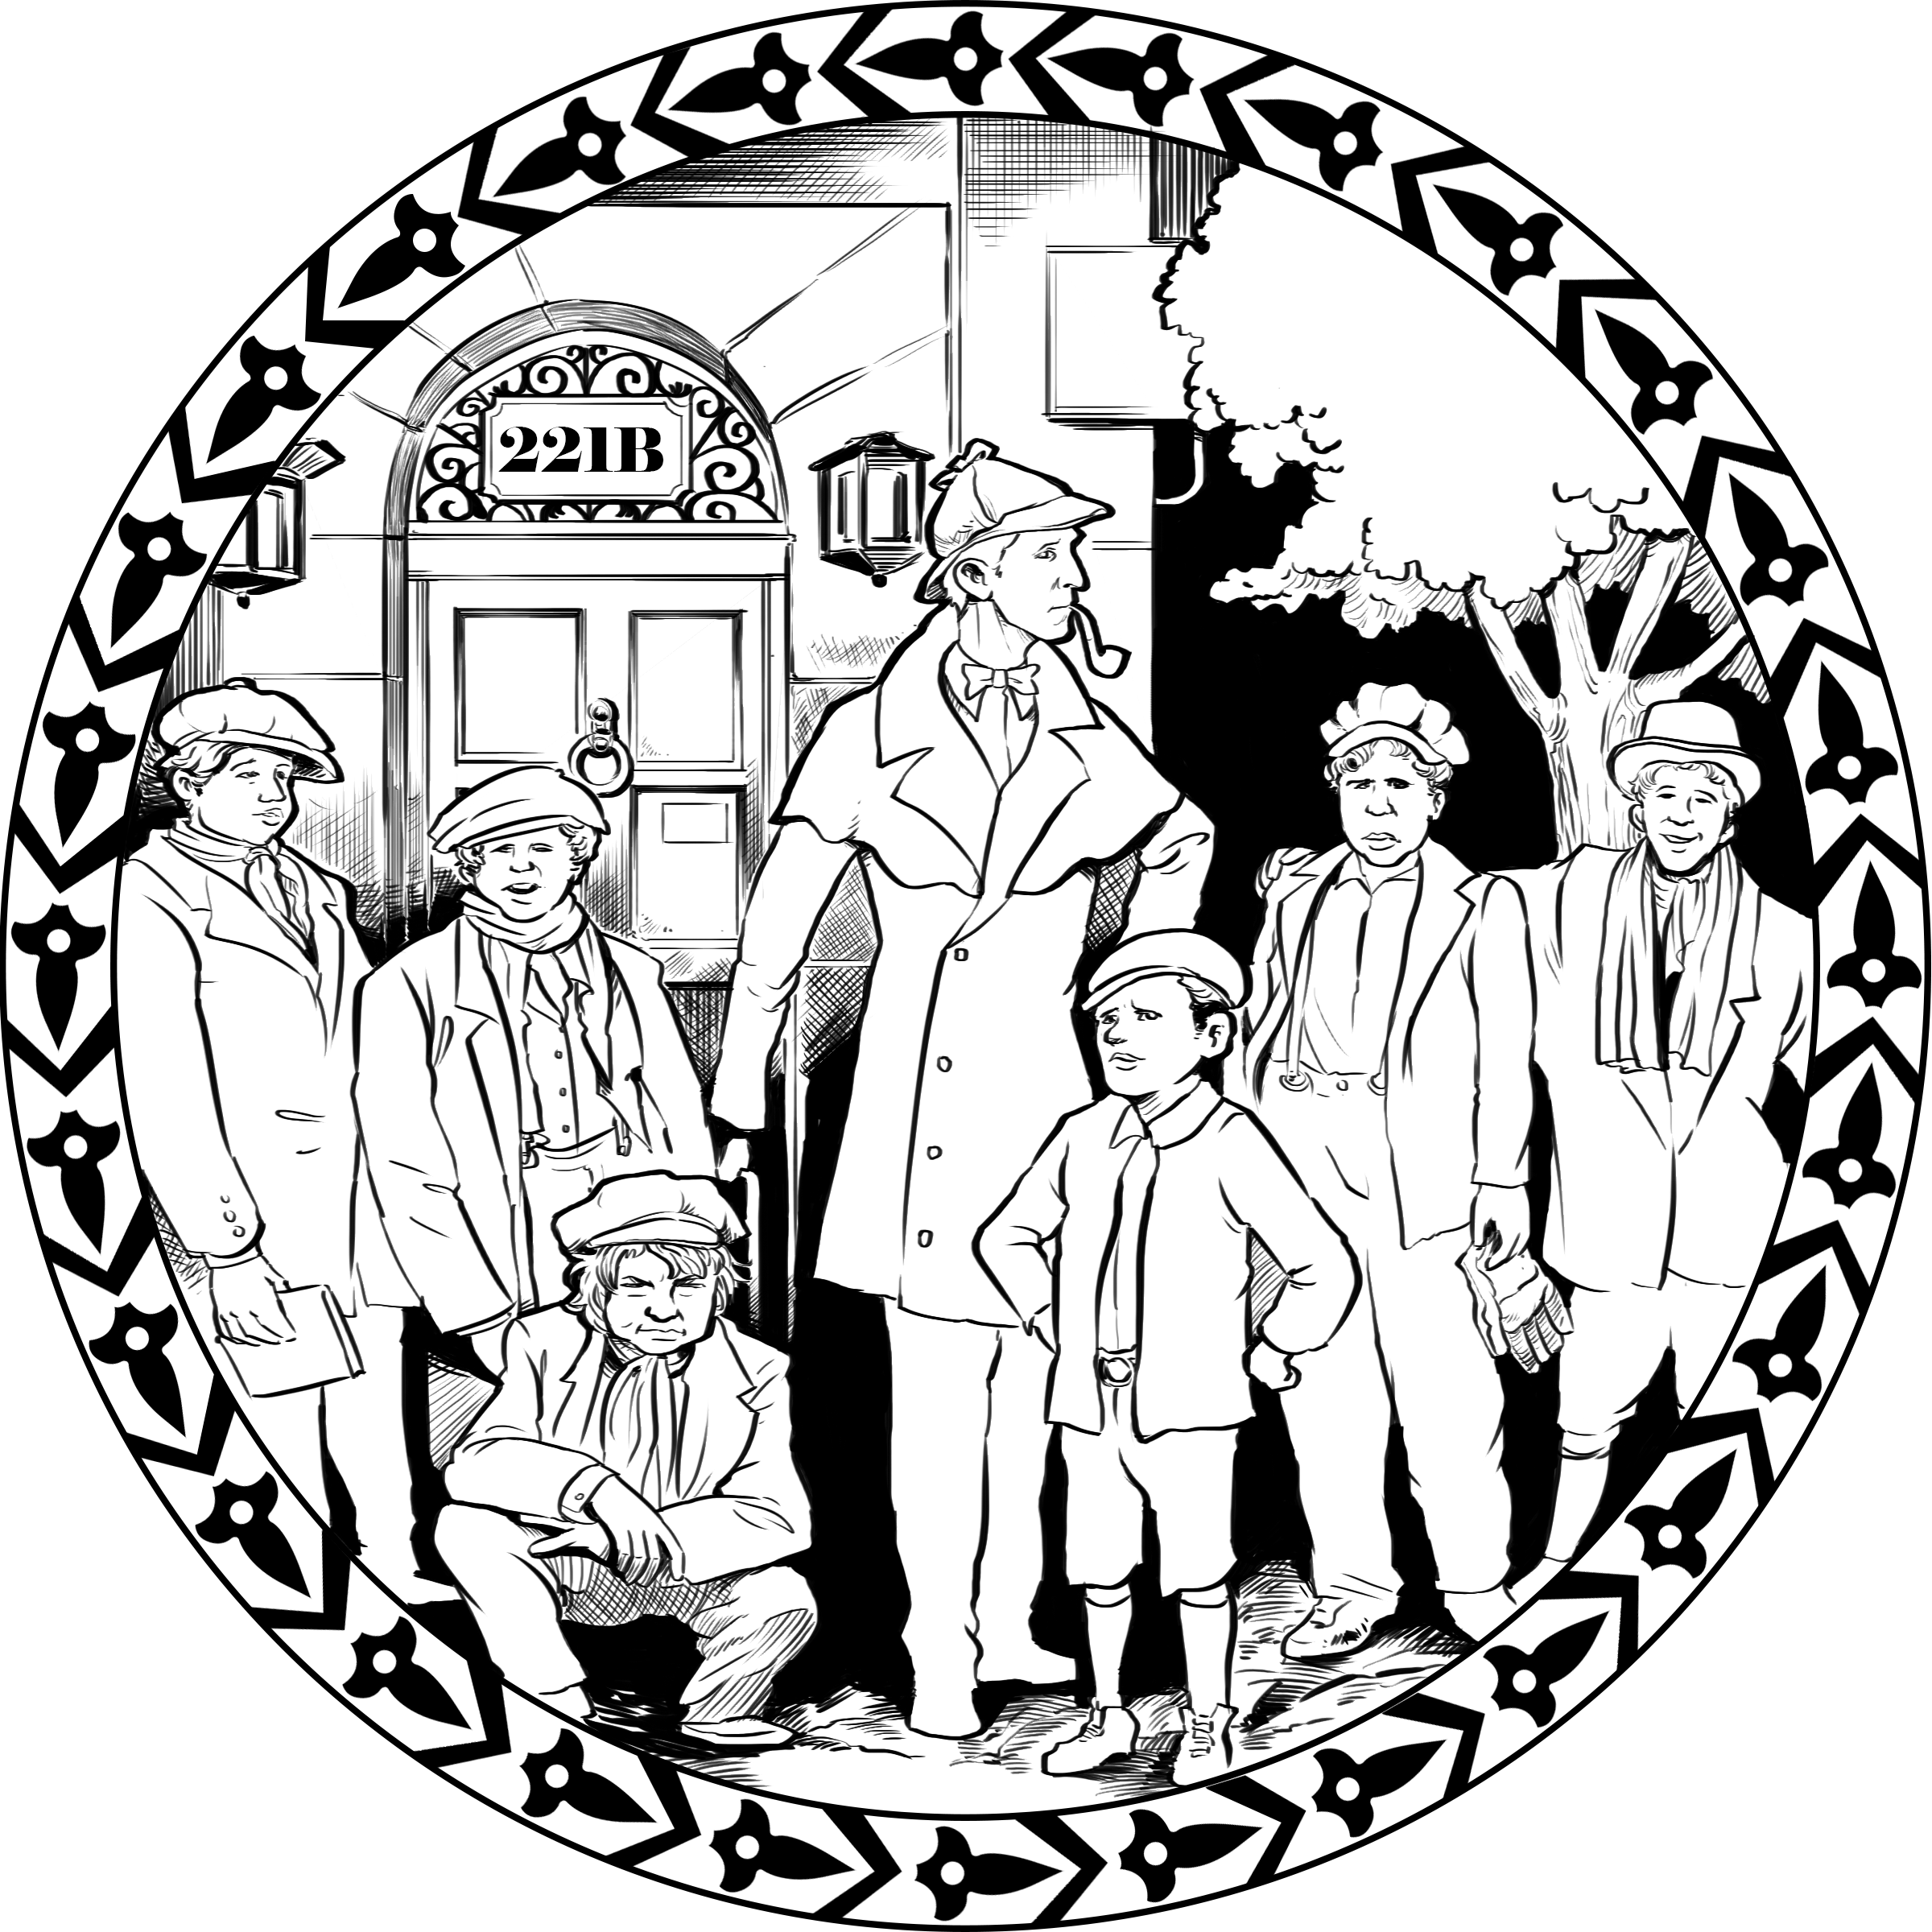 Kickstarter For Sherlockian Game to Feature Medal